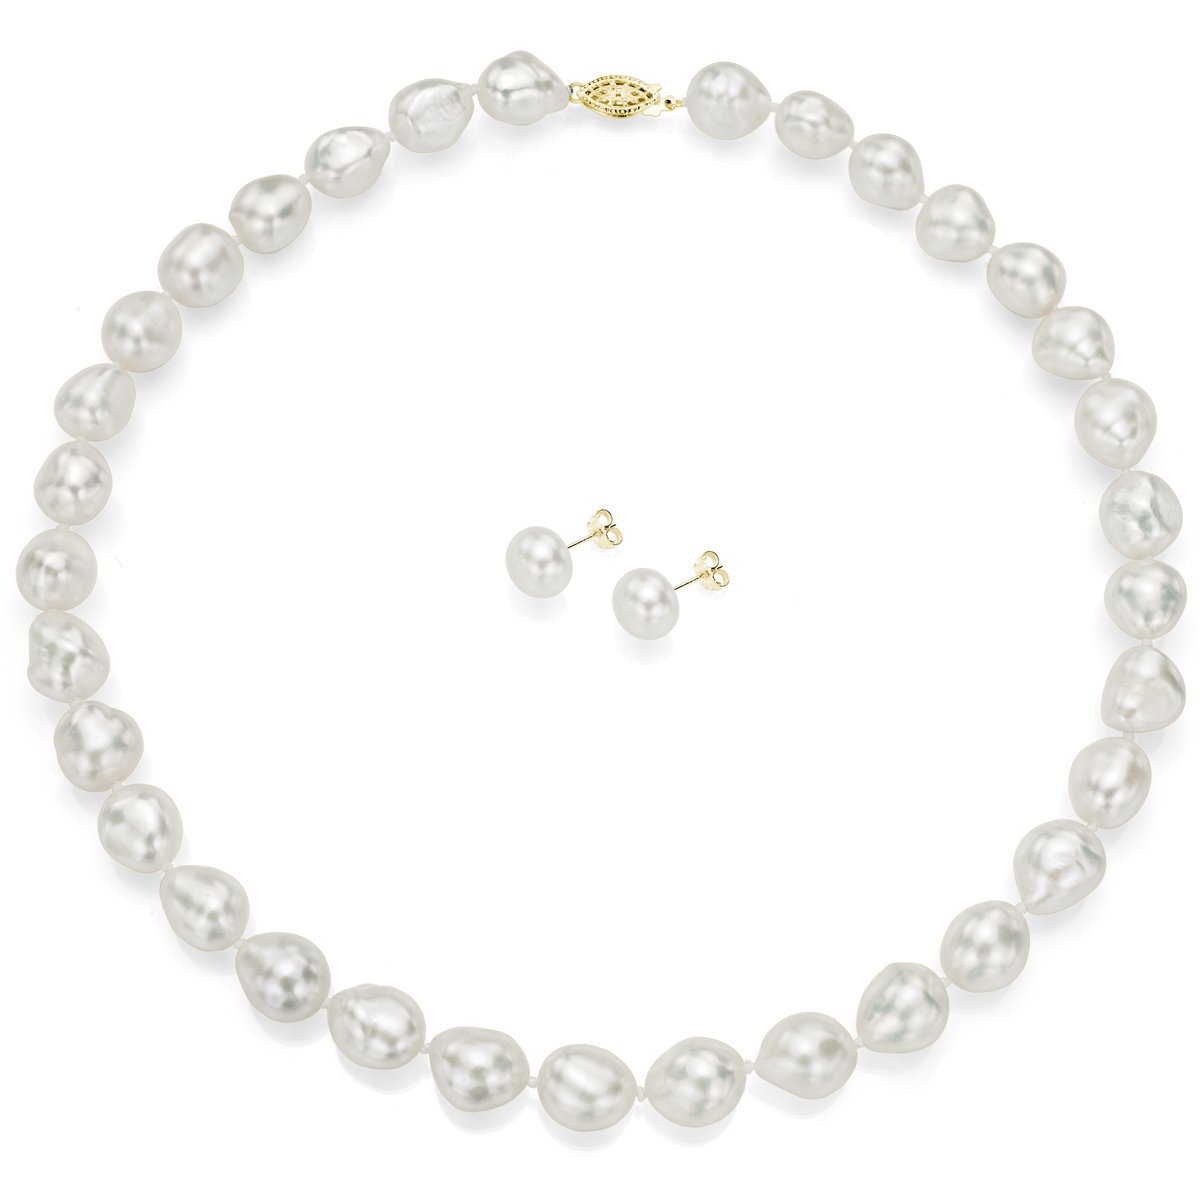 14k Yellow Gold 11-11.5mm White Baroque Freshwater Cultured Pearl Necklace 18'' and Stud Earrings Set